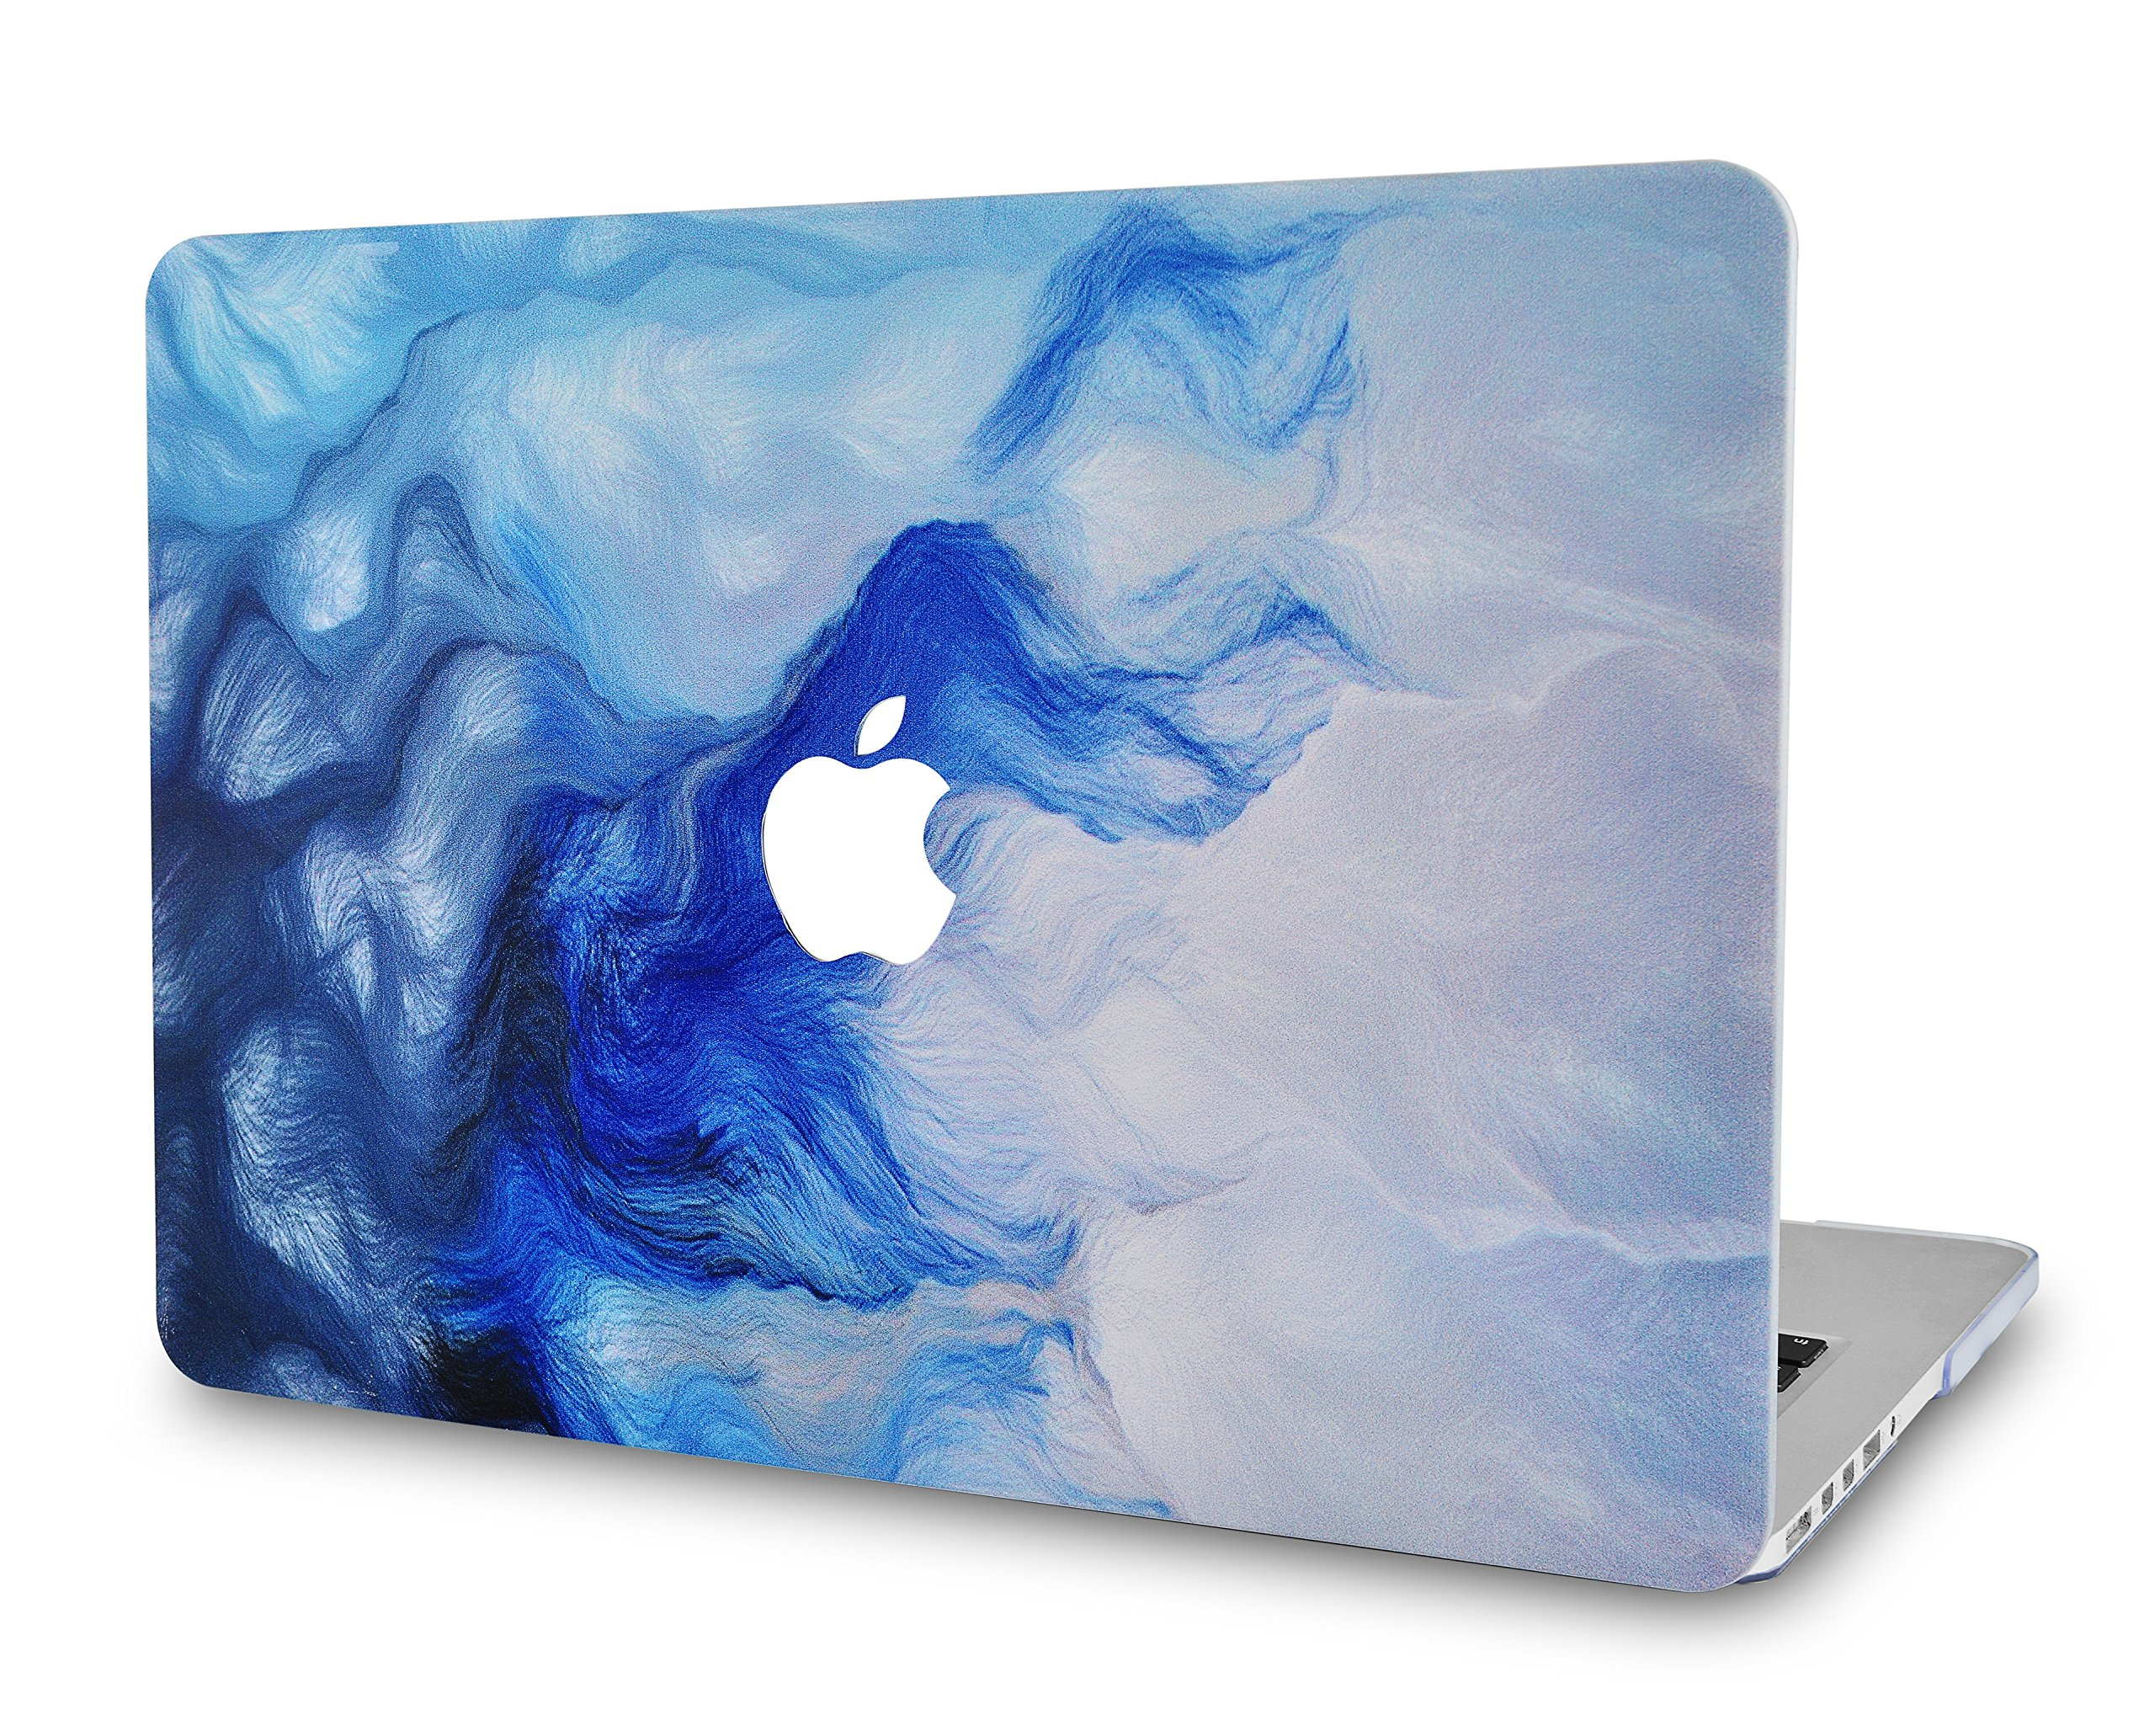 LuvCase Rubberized Plastic Hard Shell Case Cover Compatible MacBook Air 13 Inch A1466 & A1369 (No Touch ID) (Mist 12)